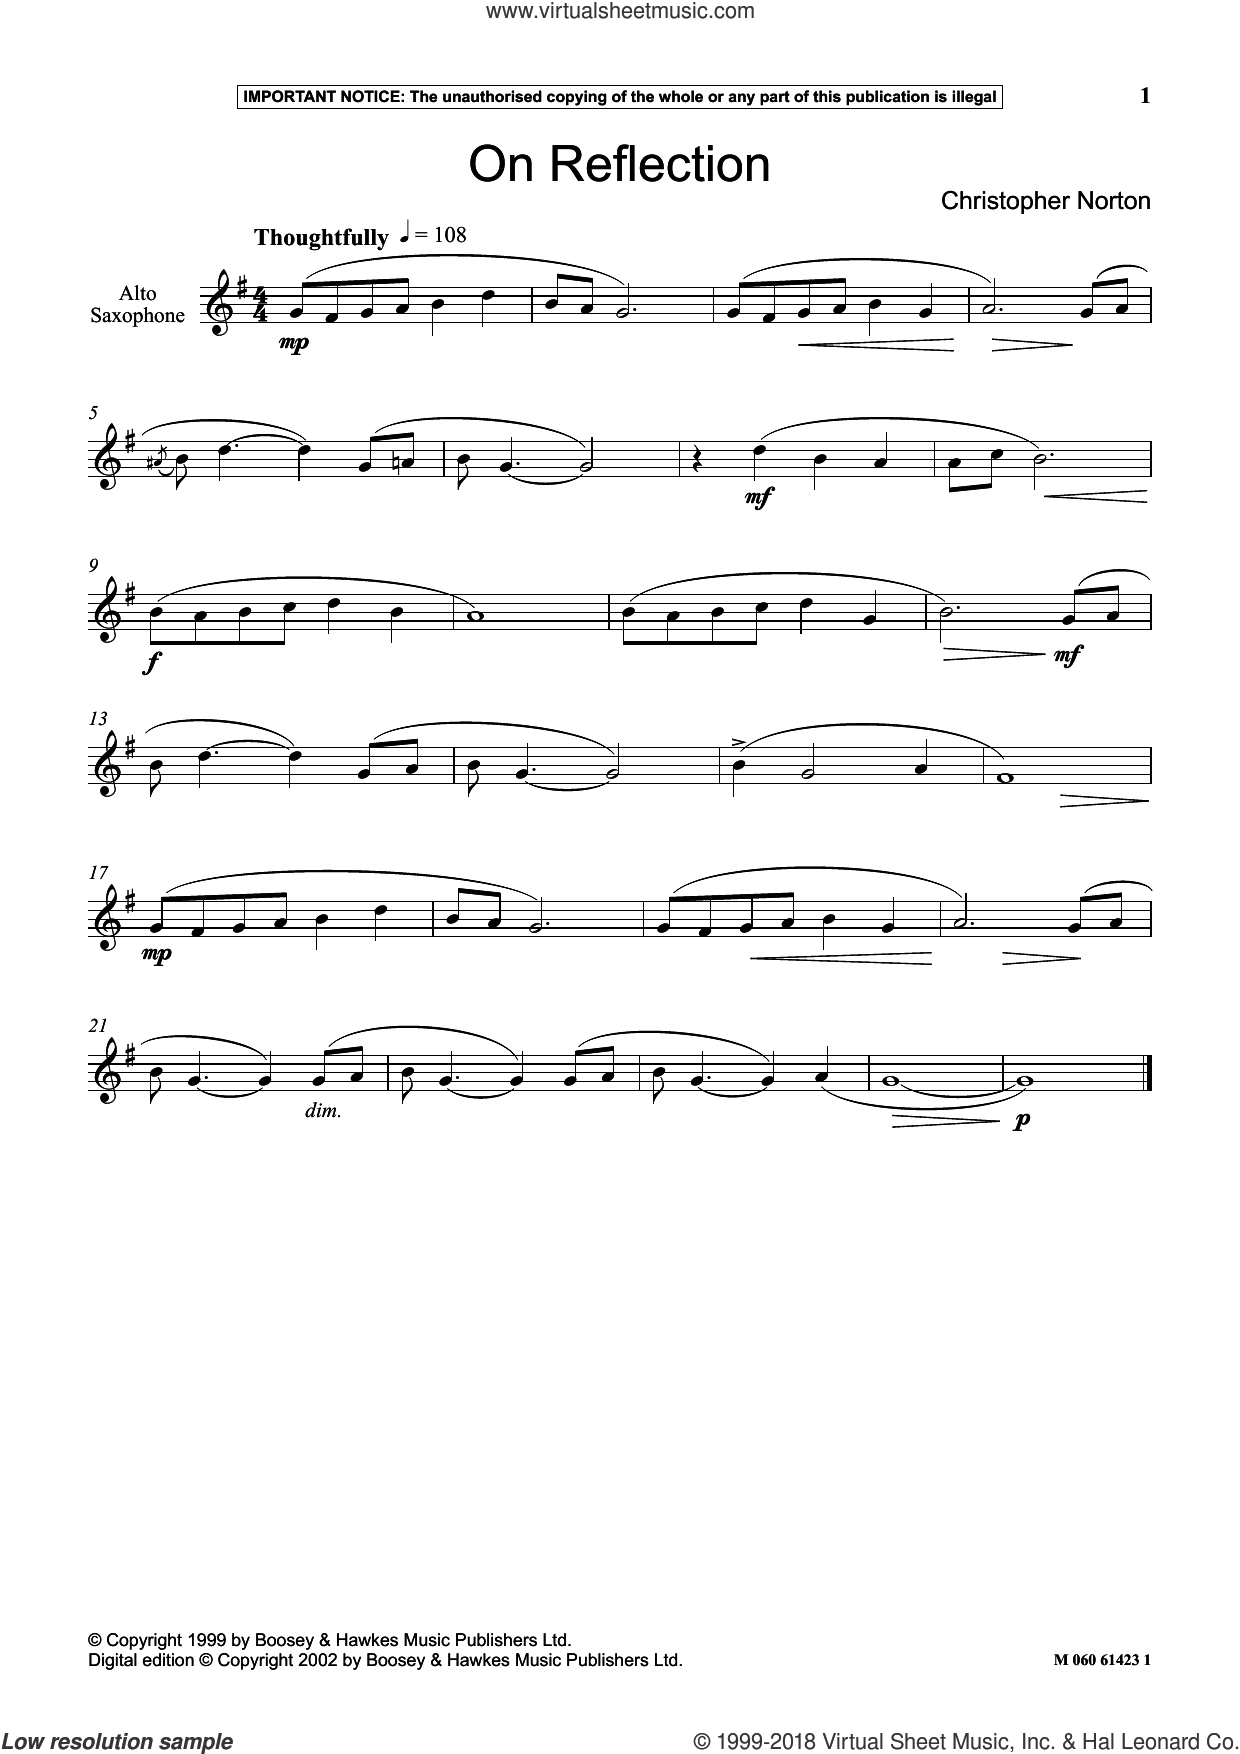 On Reflection sheet music for alto saxophone solo by Christopher Norton, classical score, intermediate skill level